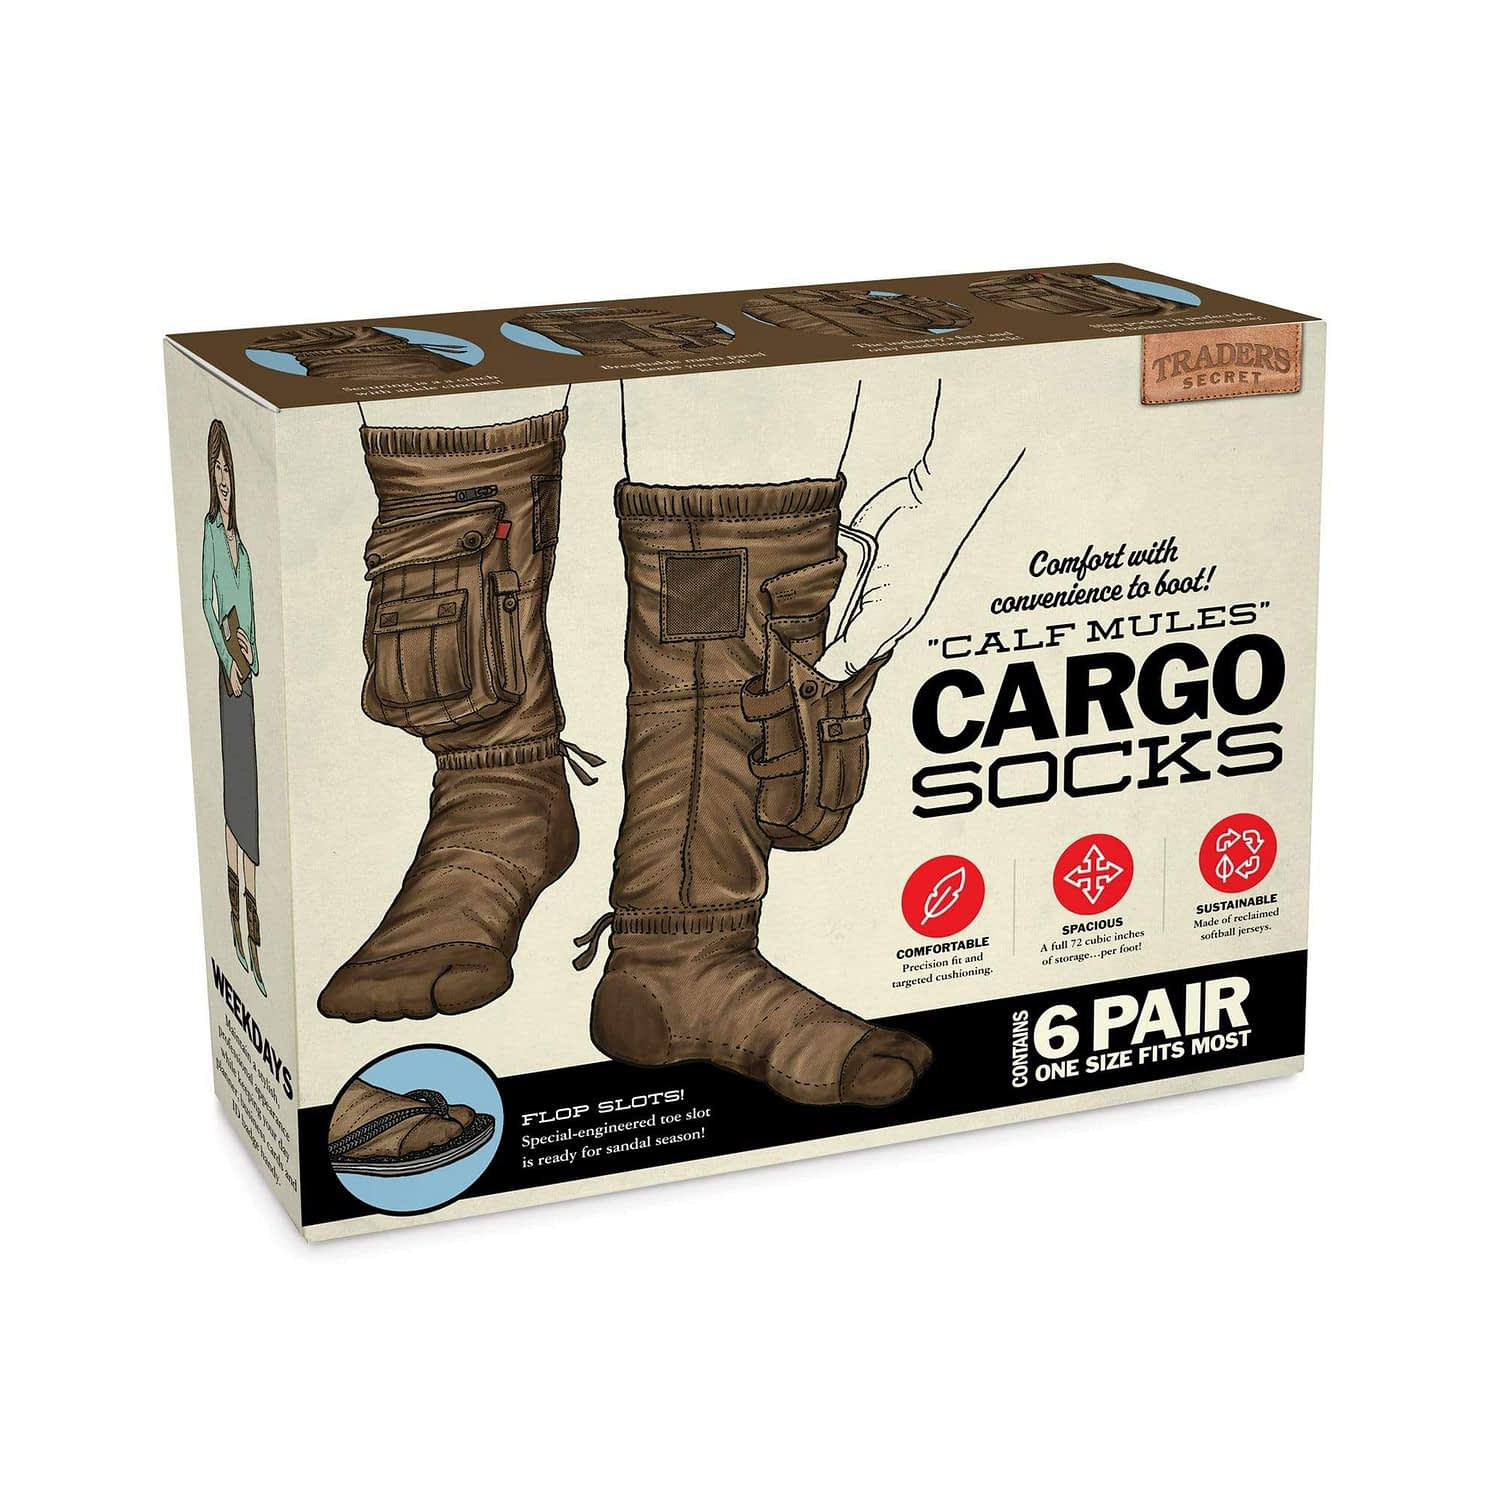 Cargo Socks Are Now A Thing